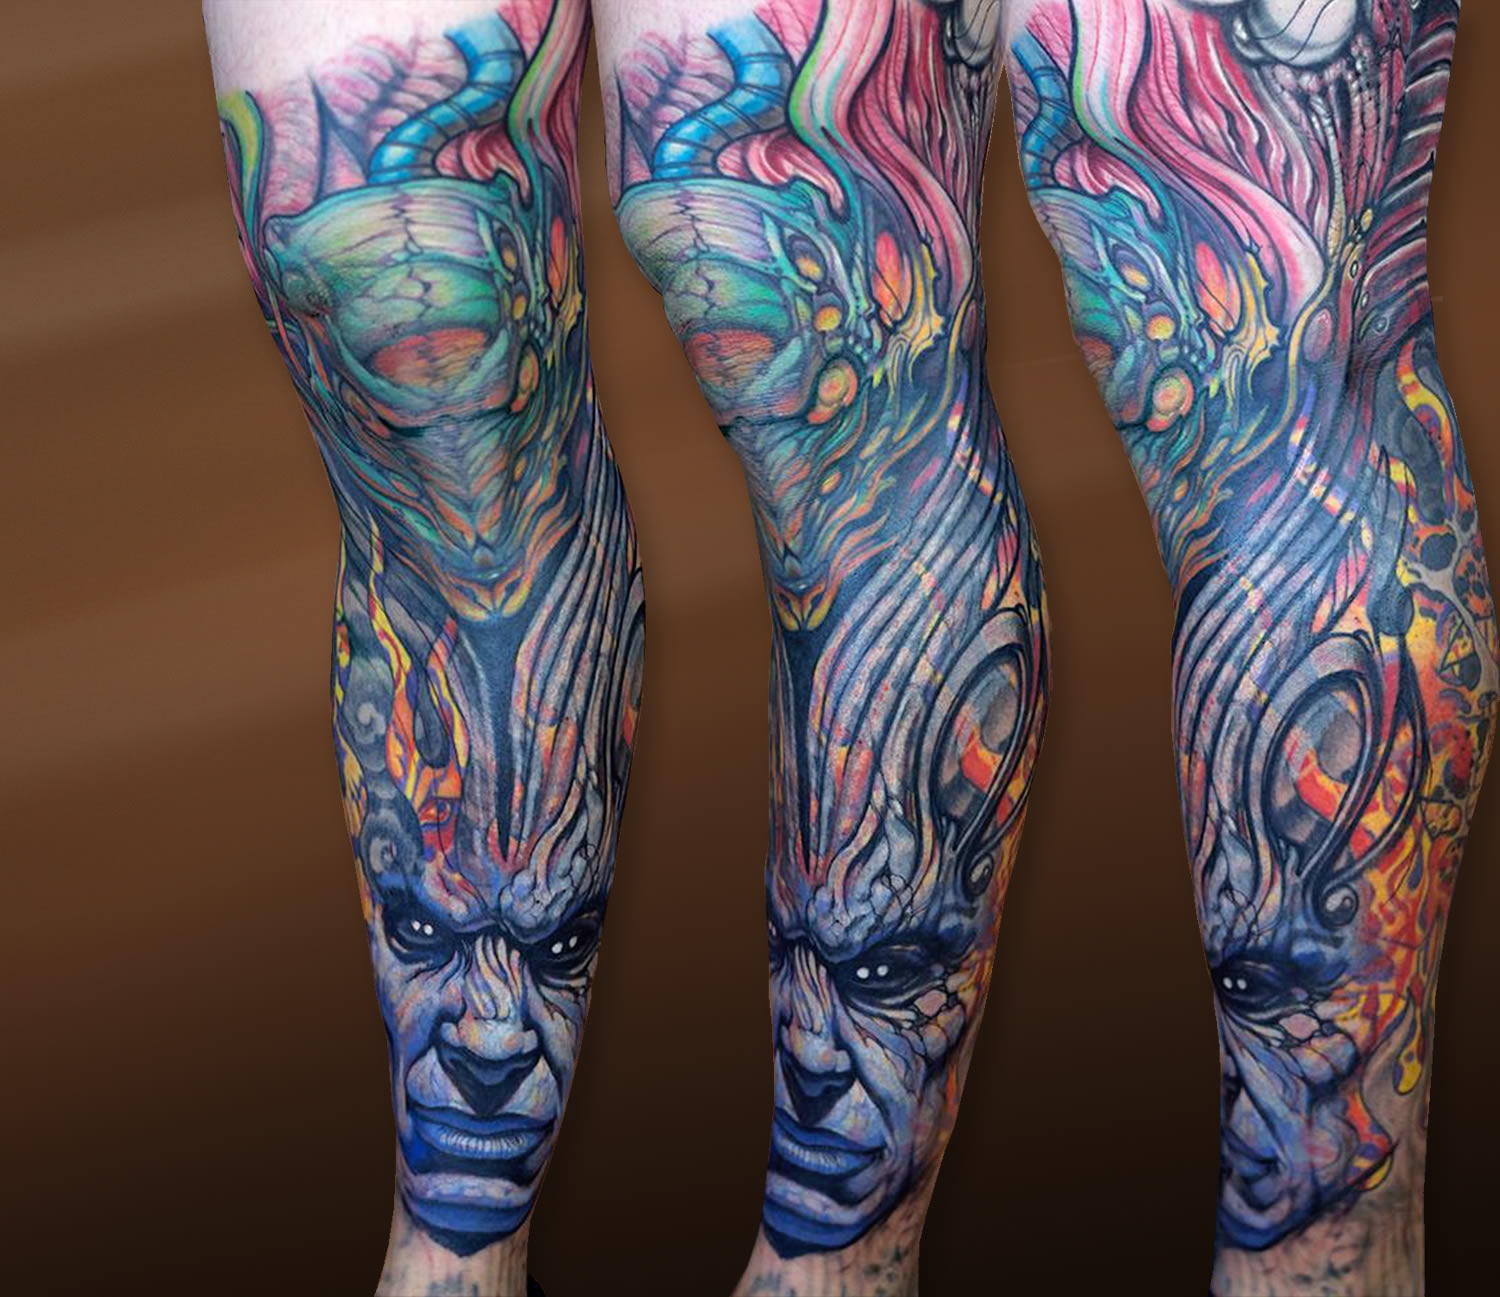 colorful surreal biomechanical tattoo on leg by paco dietz